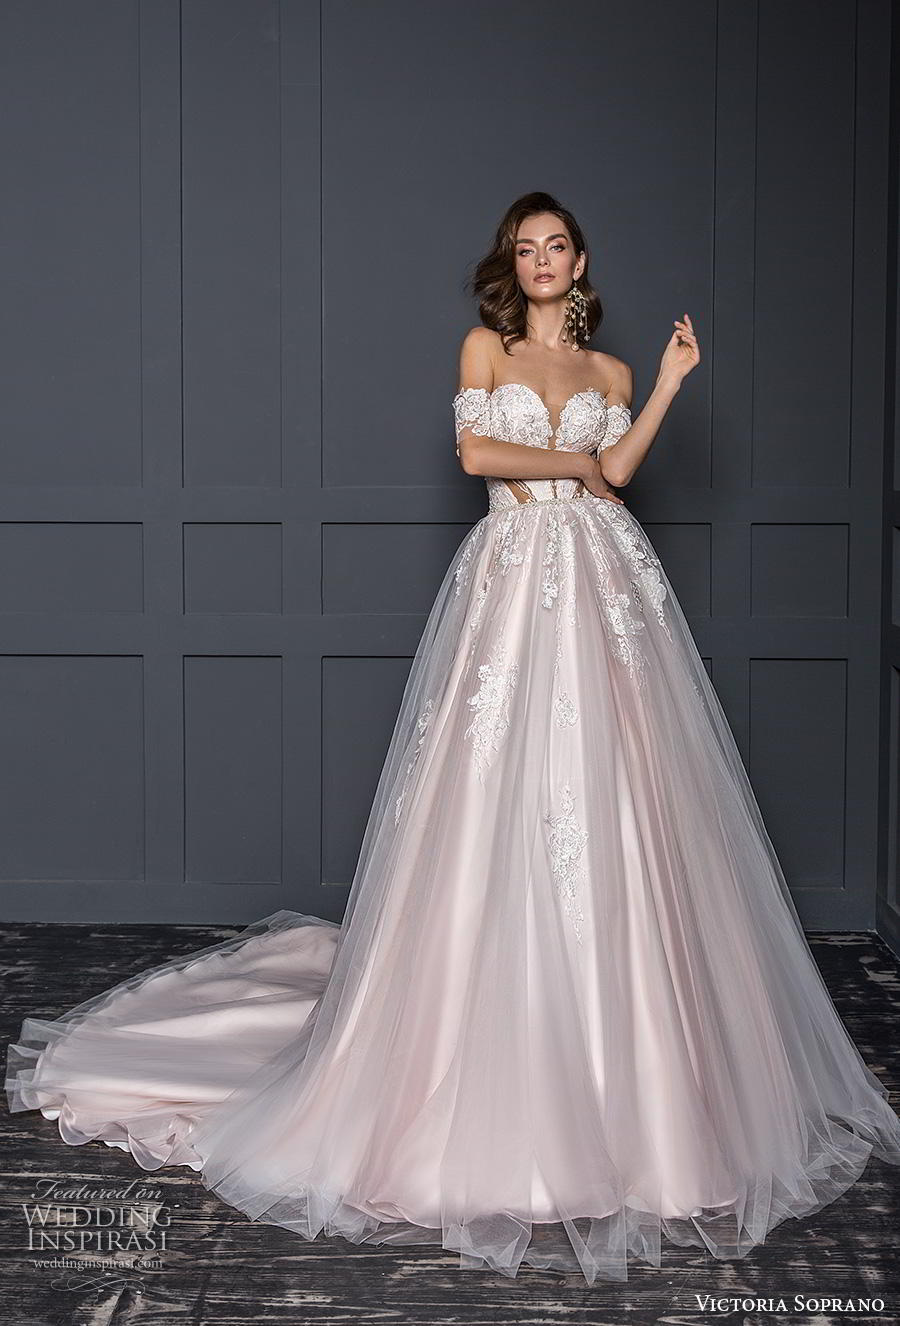 victoria soprano 2020 bridal off the shoulder sweetheart neckline heavily embellished bodice blush ball gown a line wedding dress mid back chapel train (9) mv